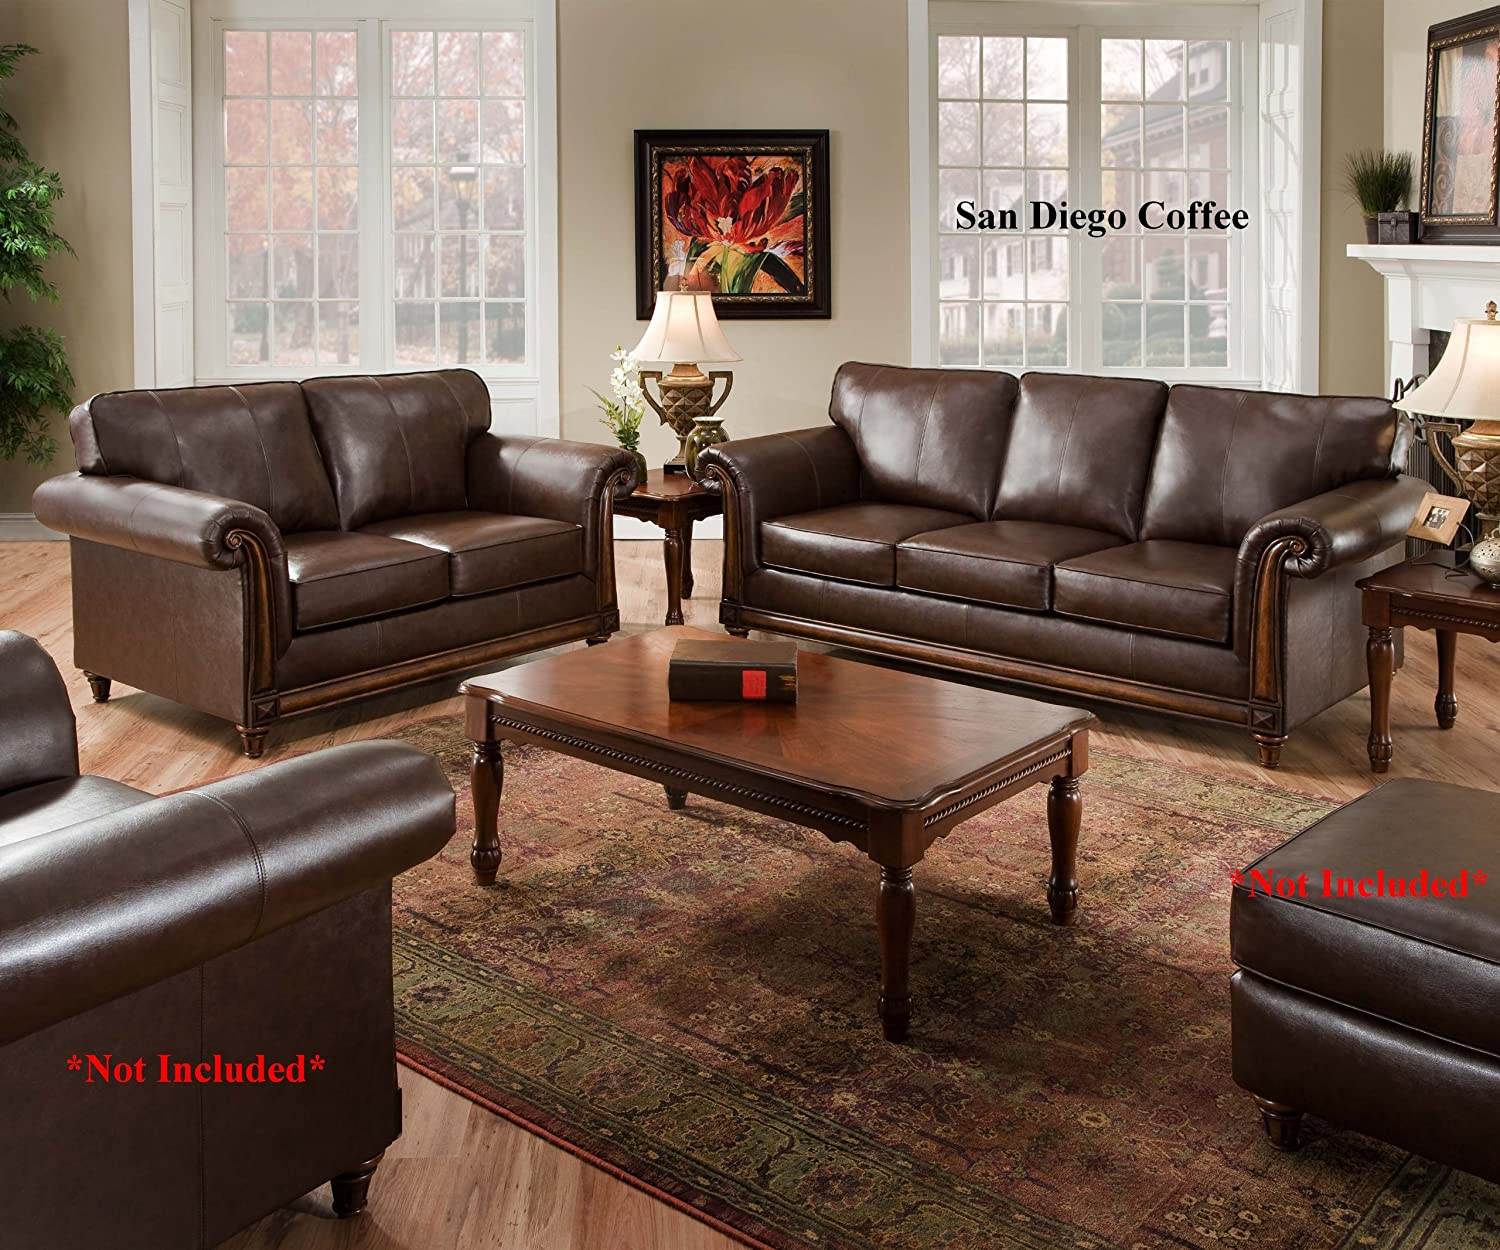 Amazon San Diego Coffee Leather Sofa & Loveseat Living Room